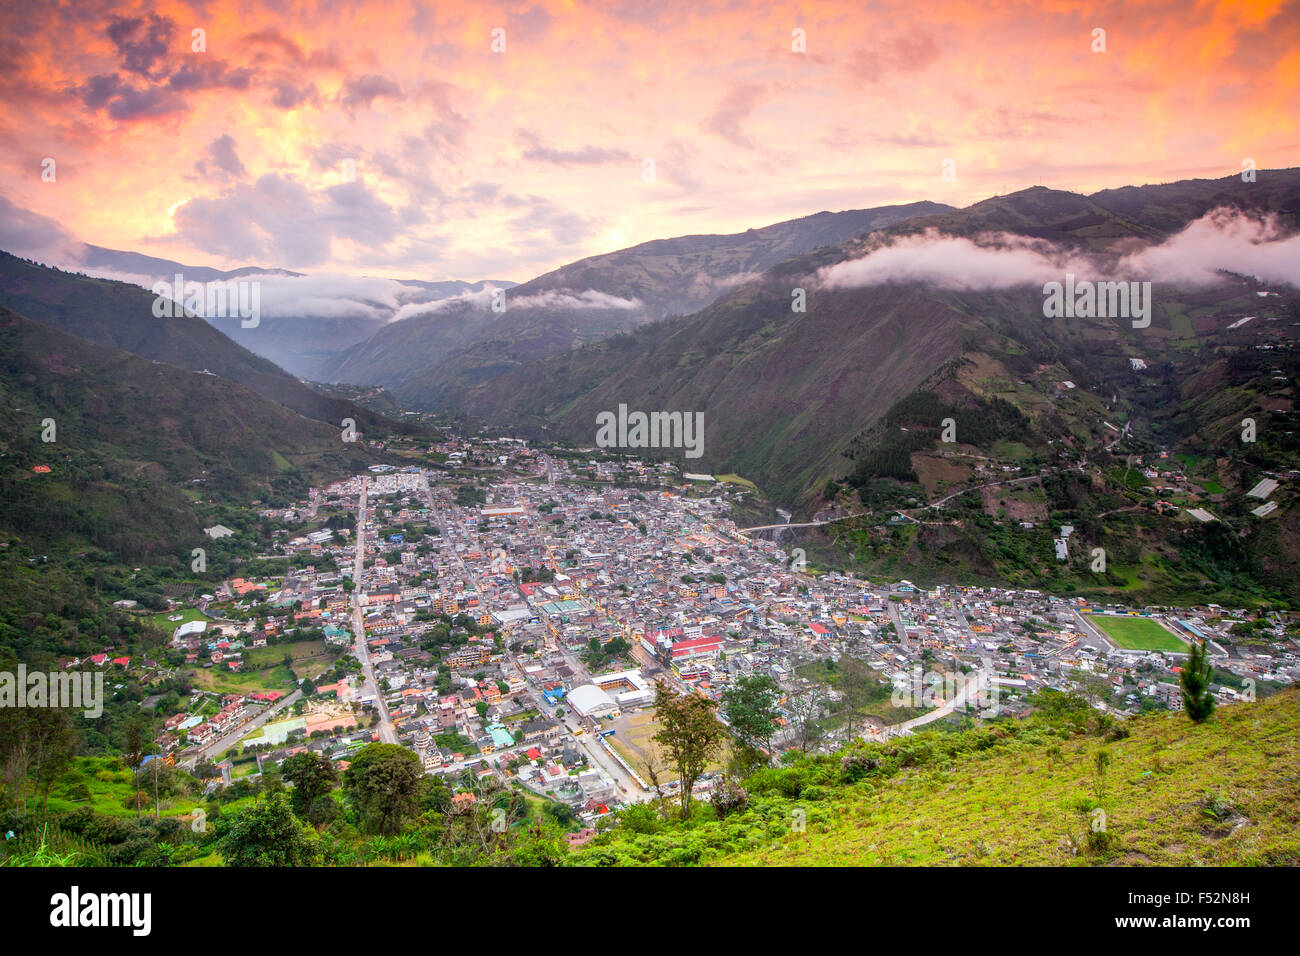 Banos Canton Is A Canton Of Ecuador Located In The Tungurahua Province It Is Also A Place With Many Touristic Attractions Stock Photo